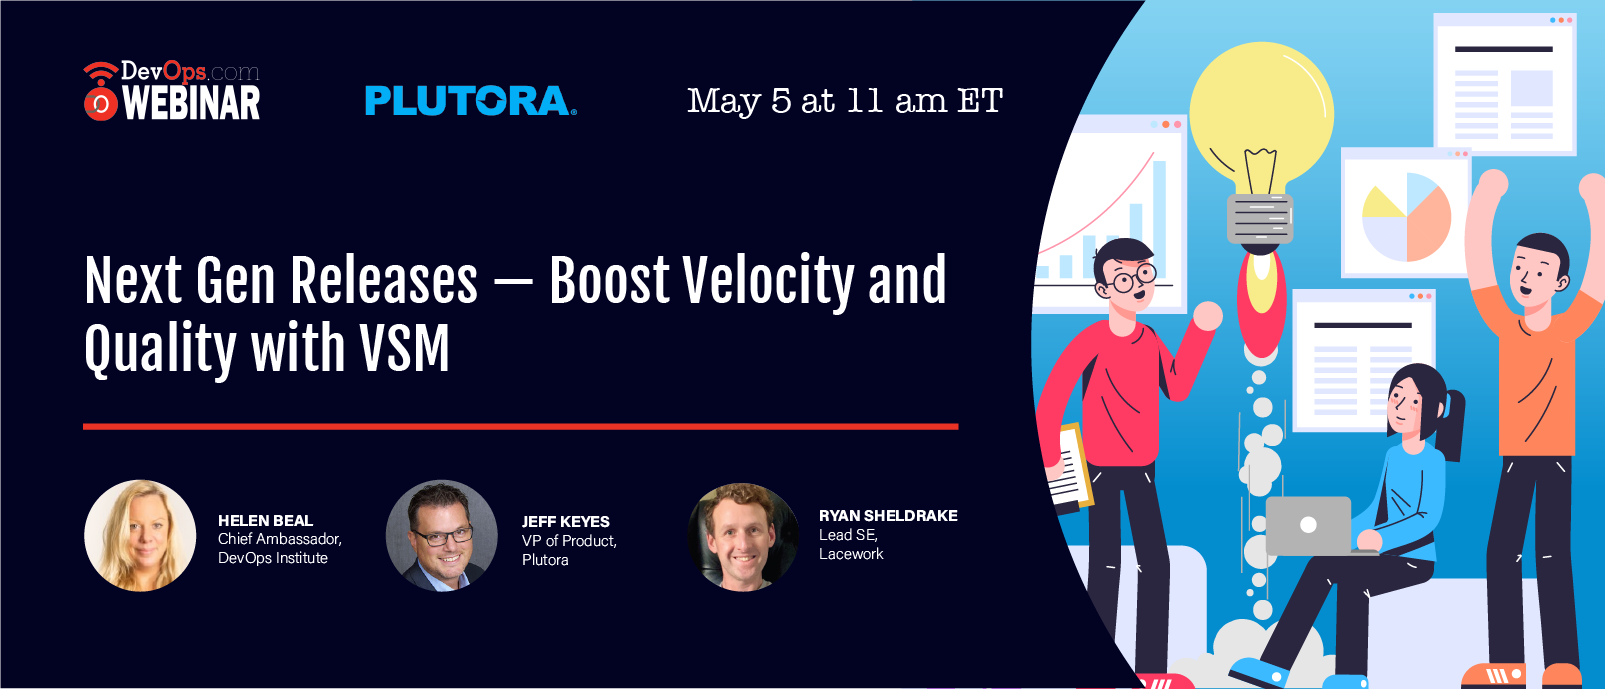 Next Gen Releases — Boost Velocity and Quality with VSM